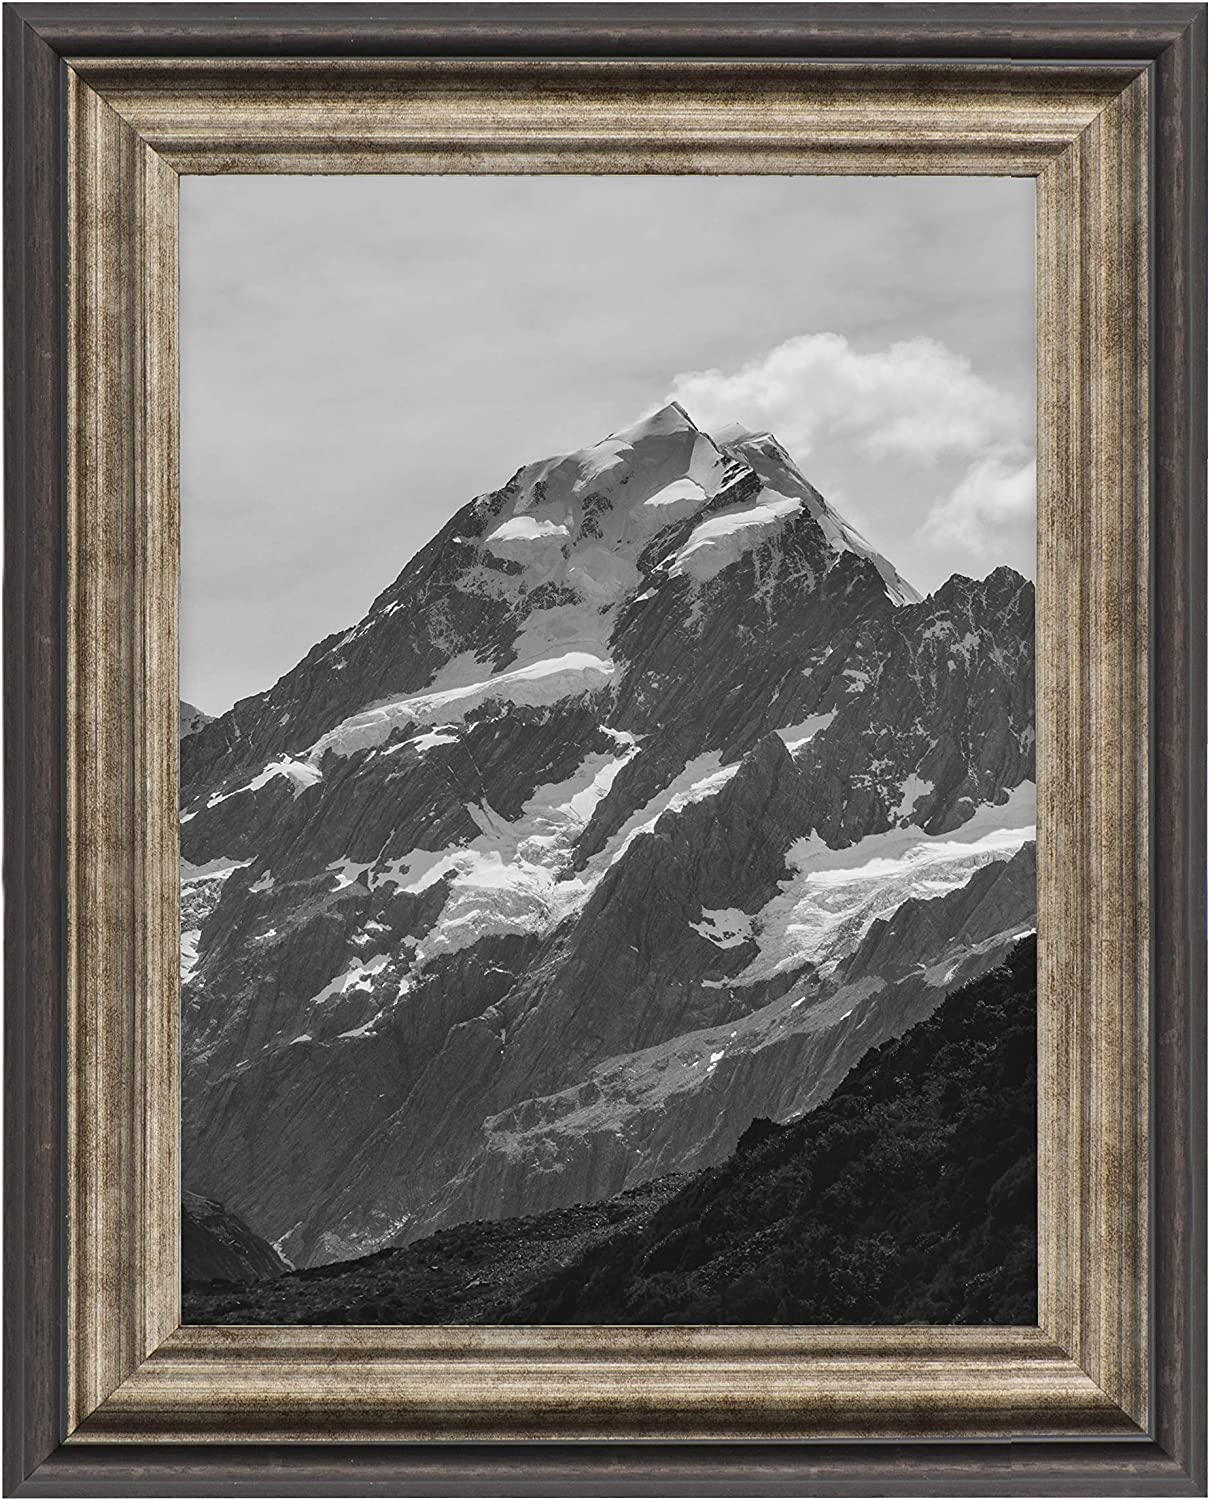 Eco-home 4x6 Picture Frames with Real Glass - for Wall Mount or Desktop Display, Photo Frame Color Antique Brown